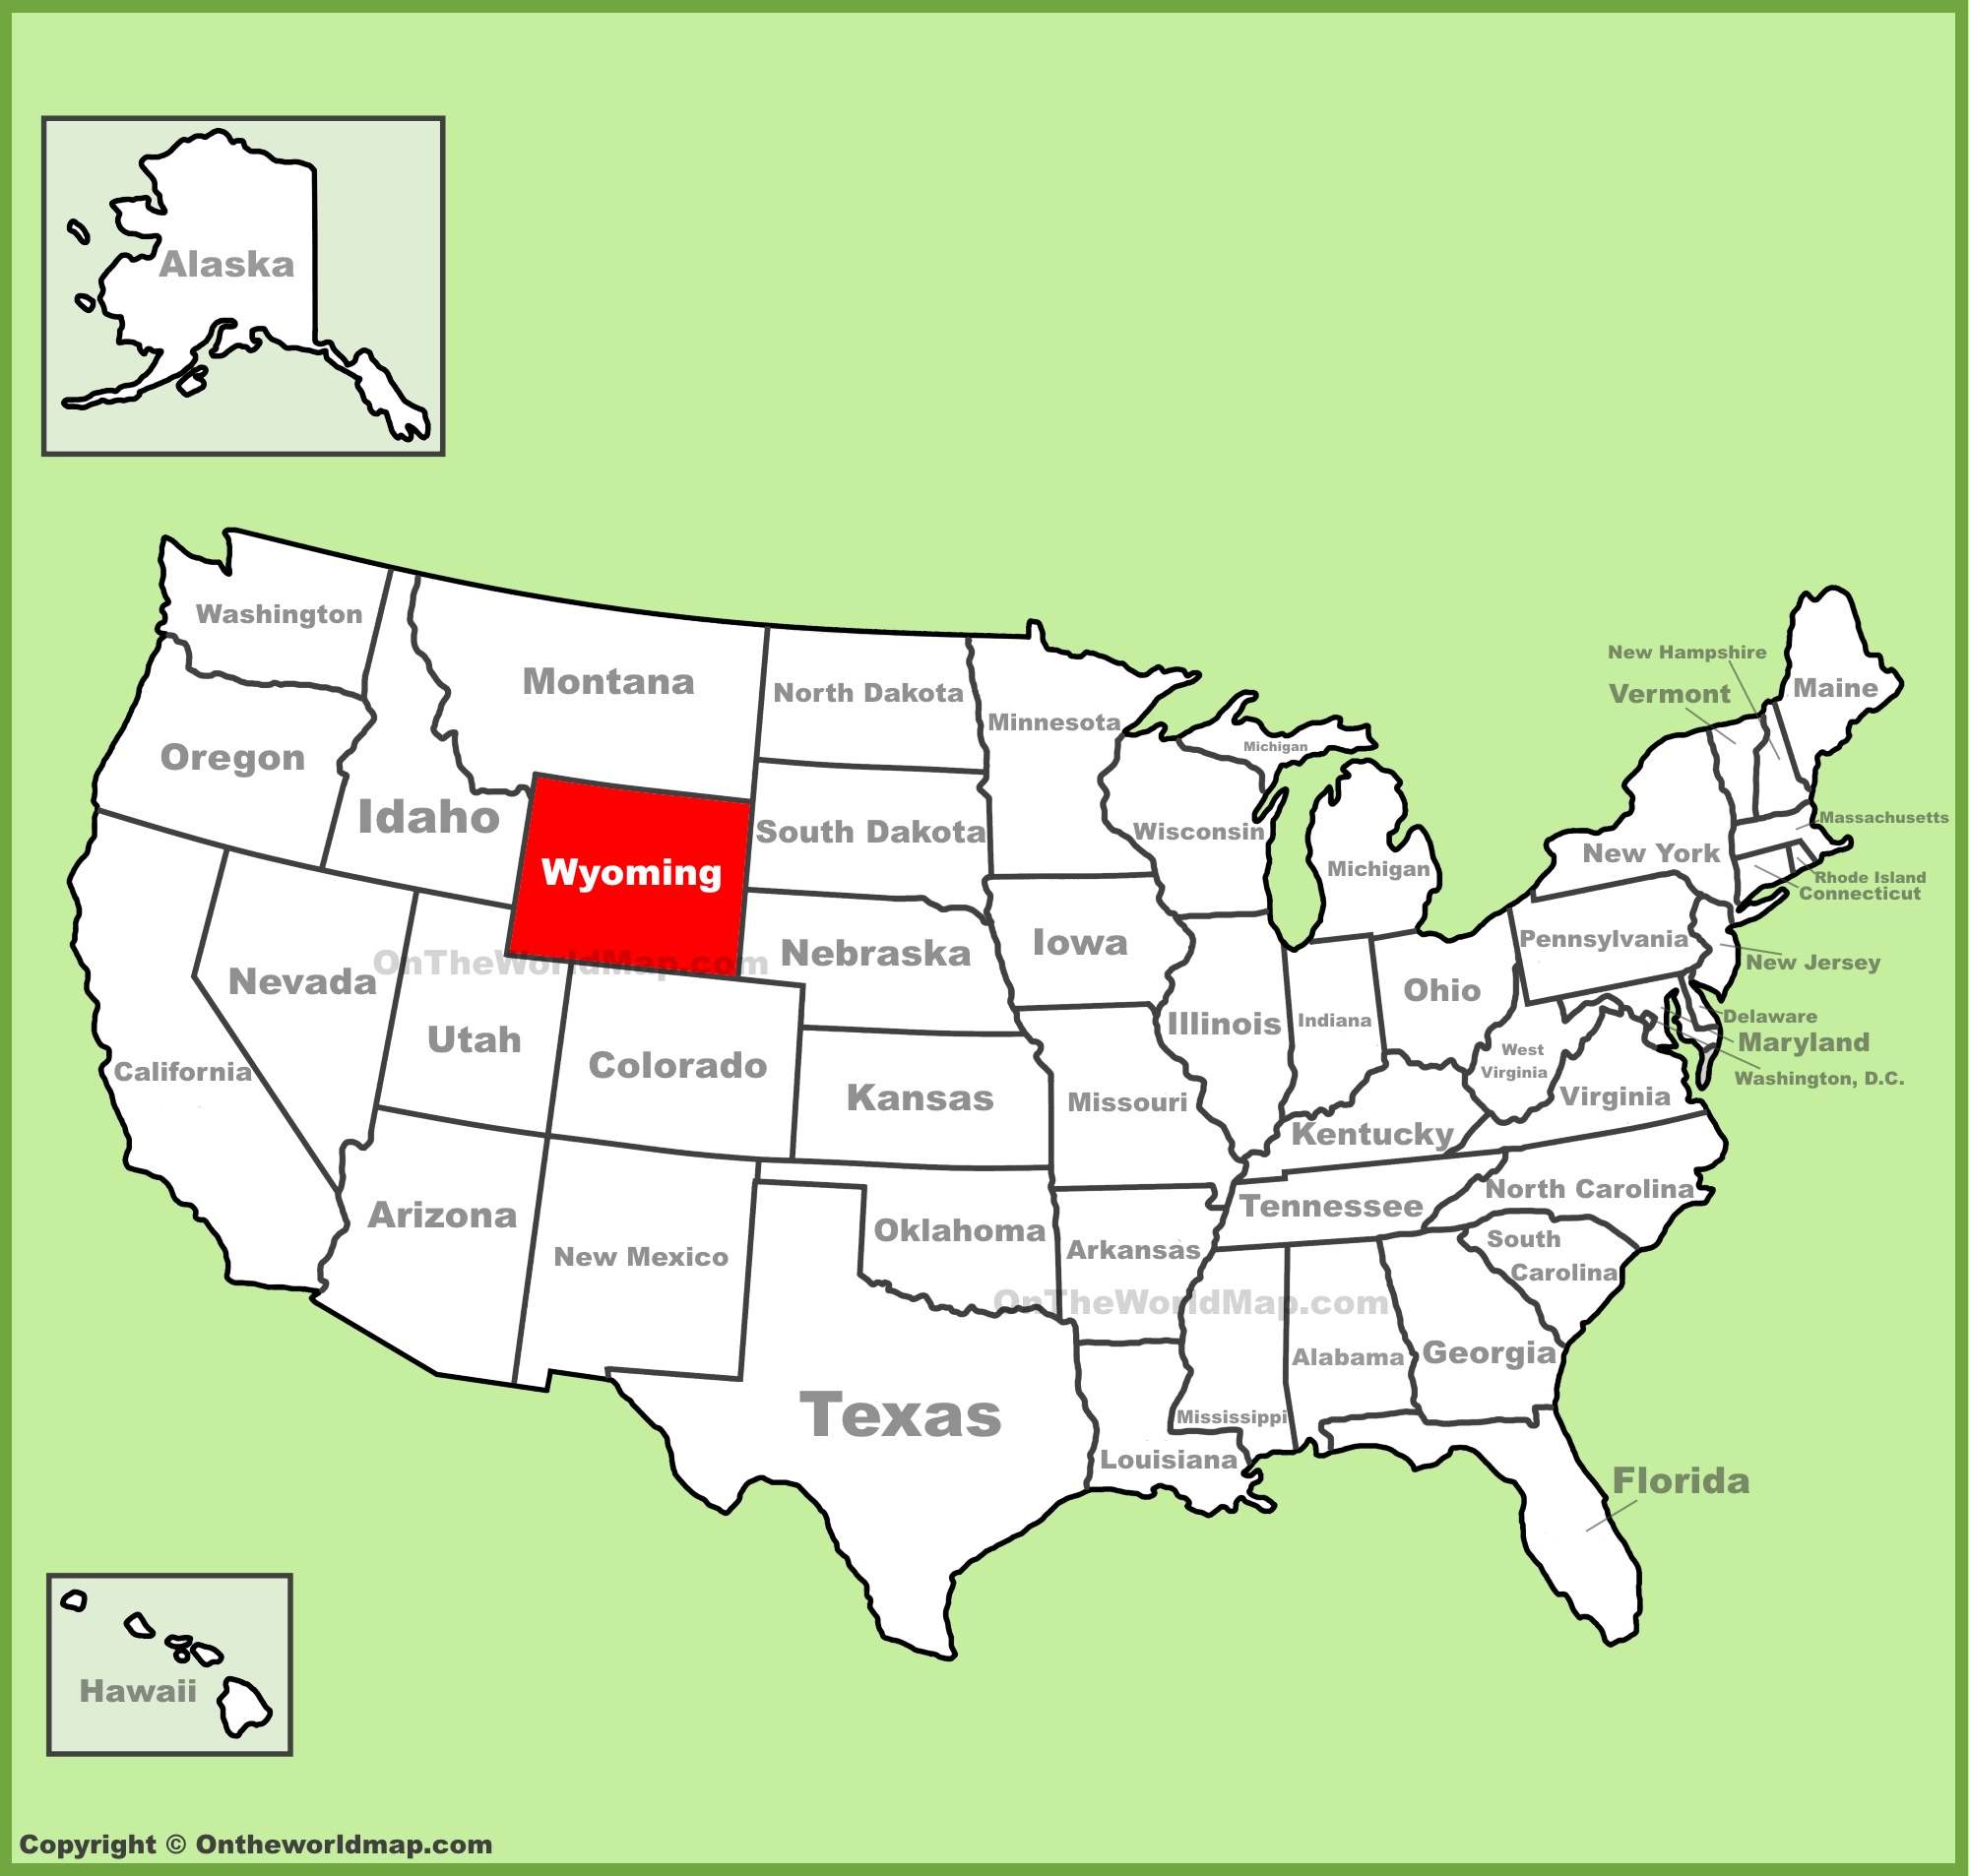 Map Of Us Wyoming Wyoming location on the U.S. Map